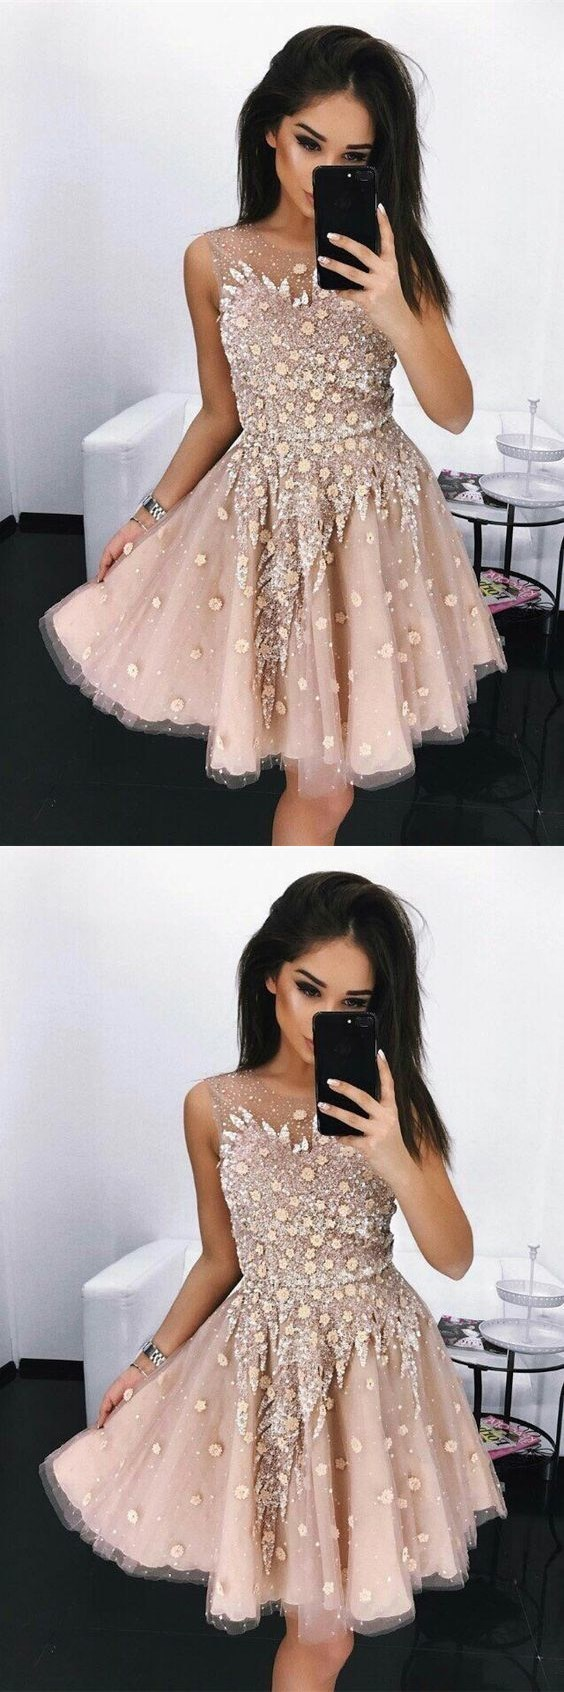 A-Line Round Neck Short Blush Prom Dress with Beading, modest beaded short